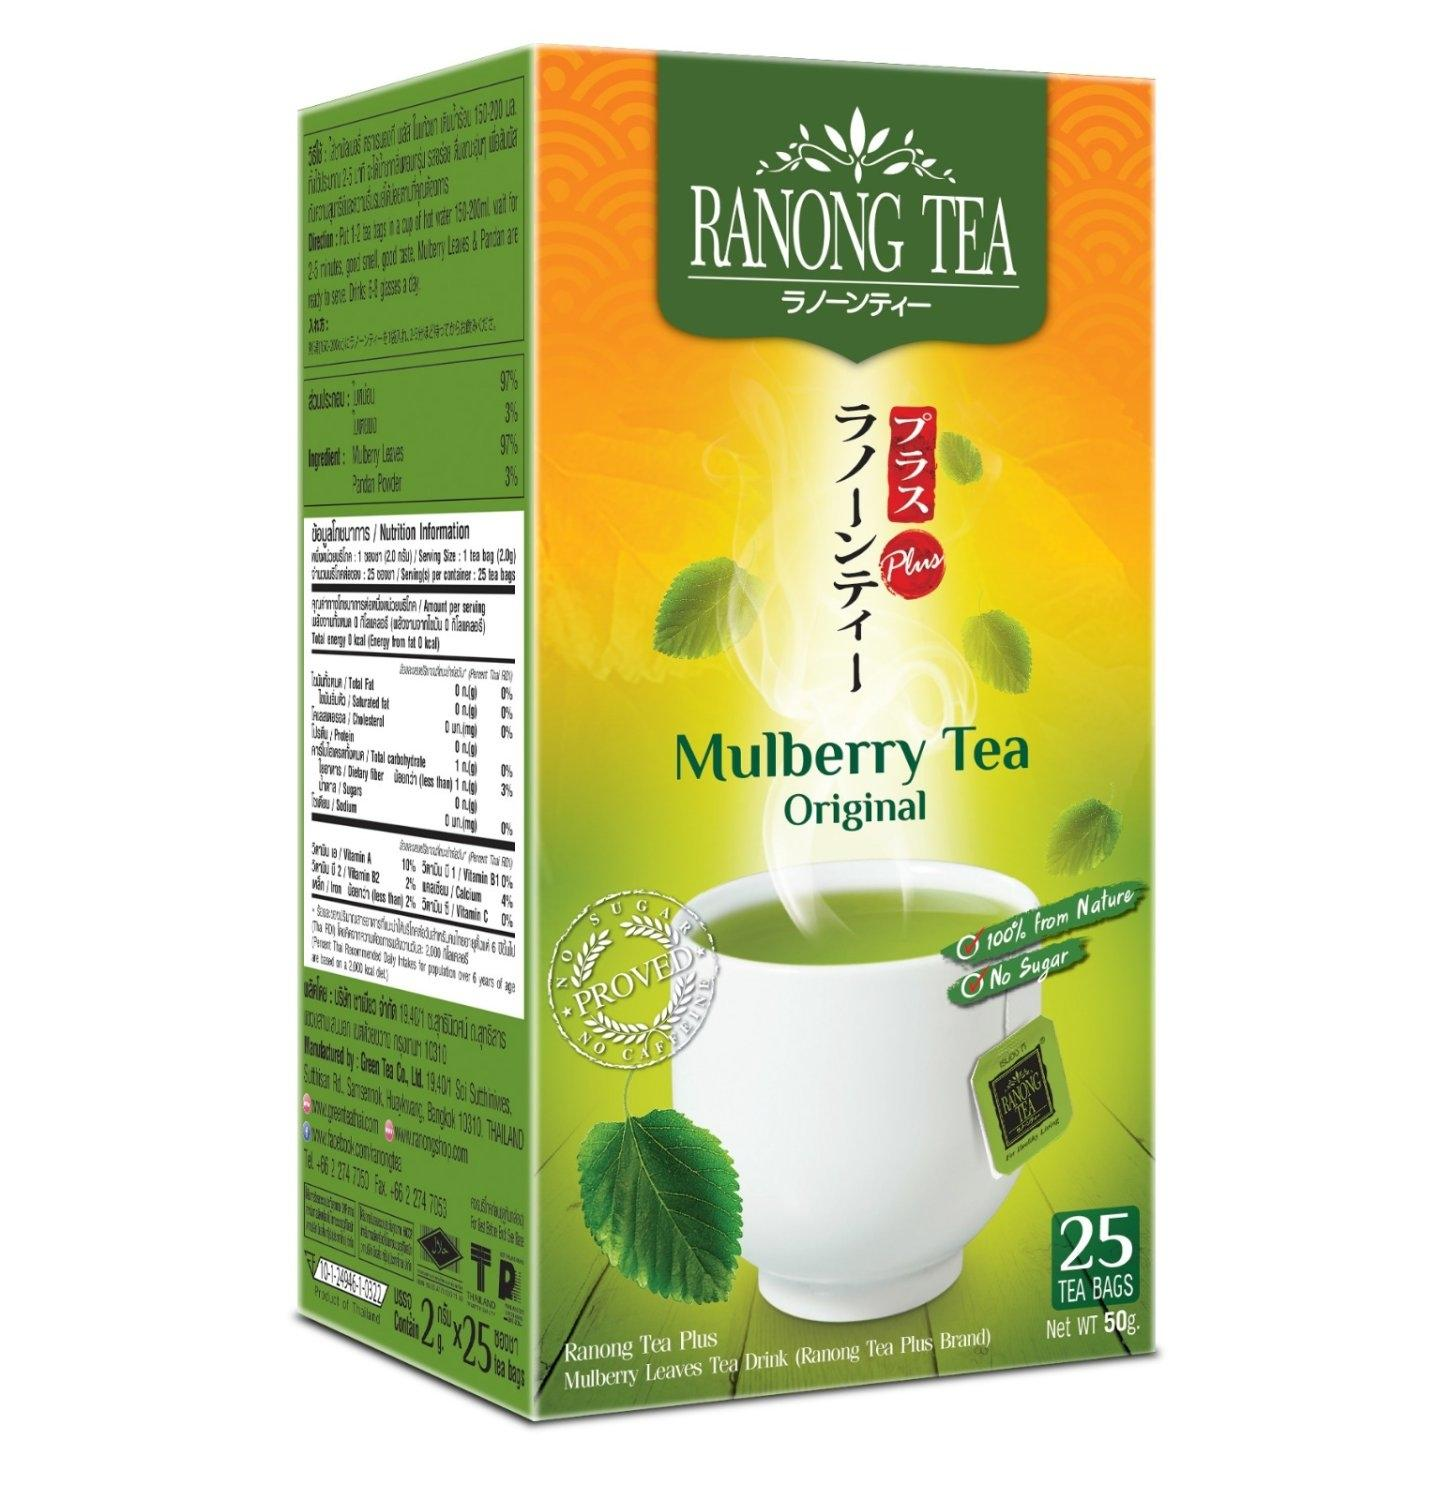 RANONG TEA PLUS MULBERRY TEA BAG (拉农茶) 桑葚茶 (香蘭)